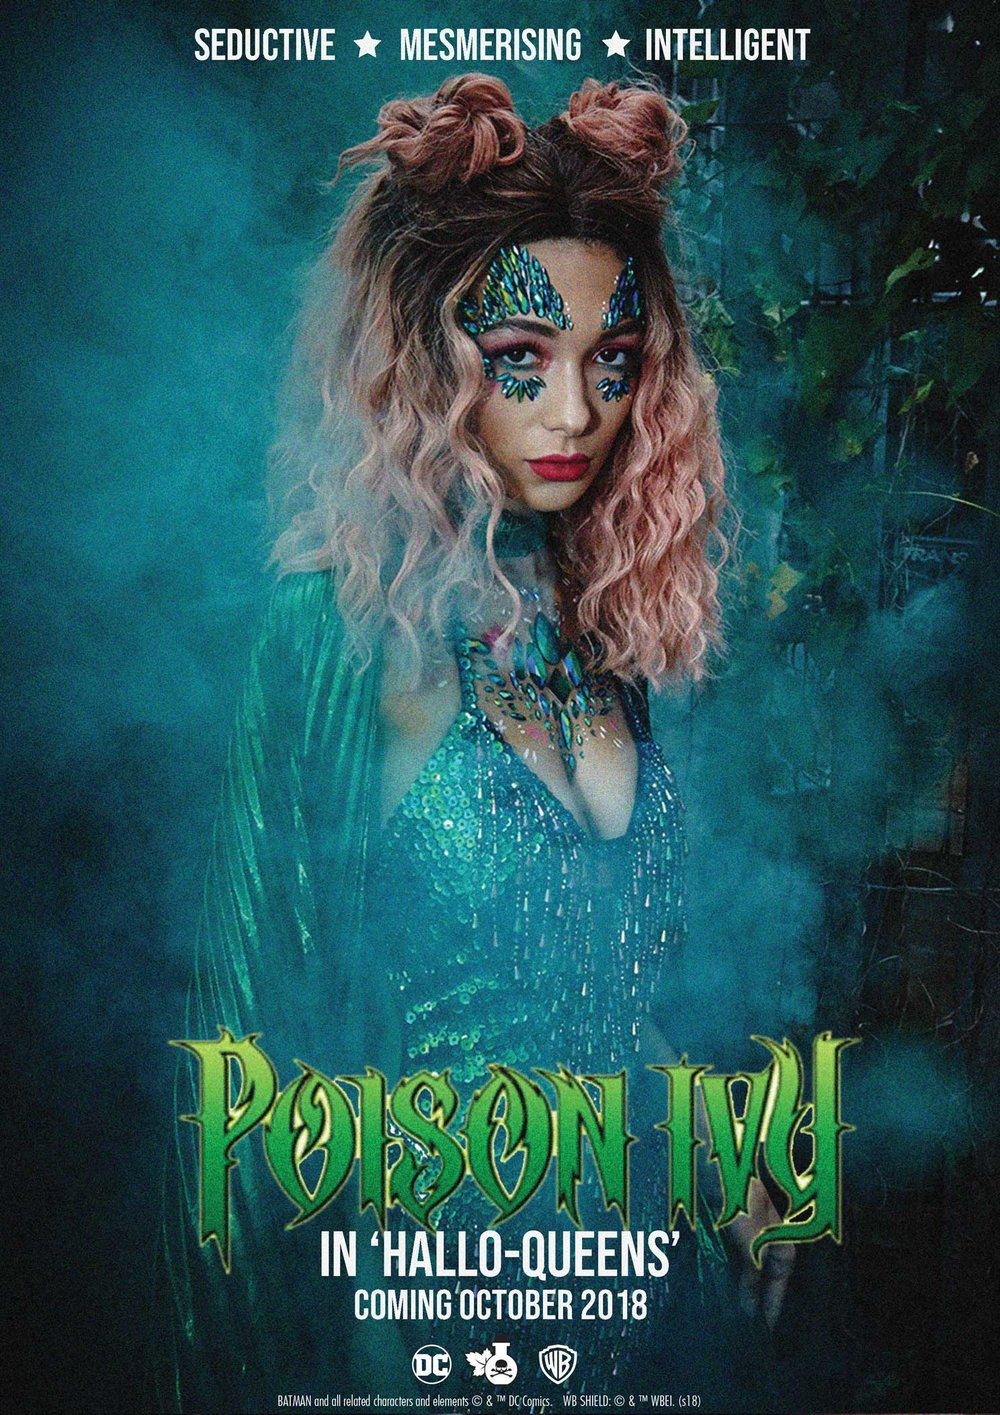 POISON IVY - Her alluring beauty and intelligence are no match for anyone! Poison Ivy is the ultimate eco-warrior babe! This gal likes to be in control!